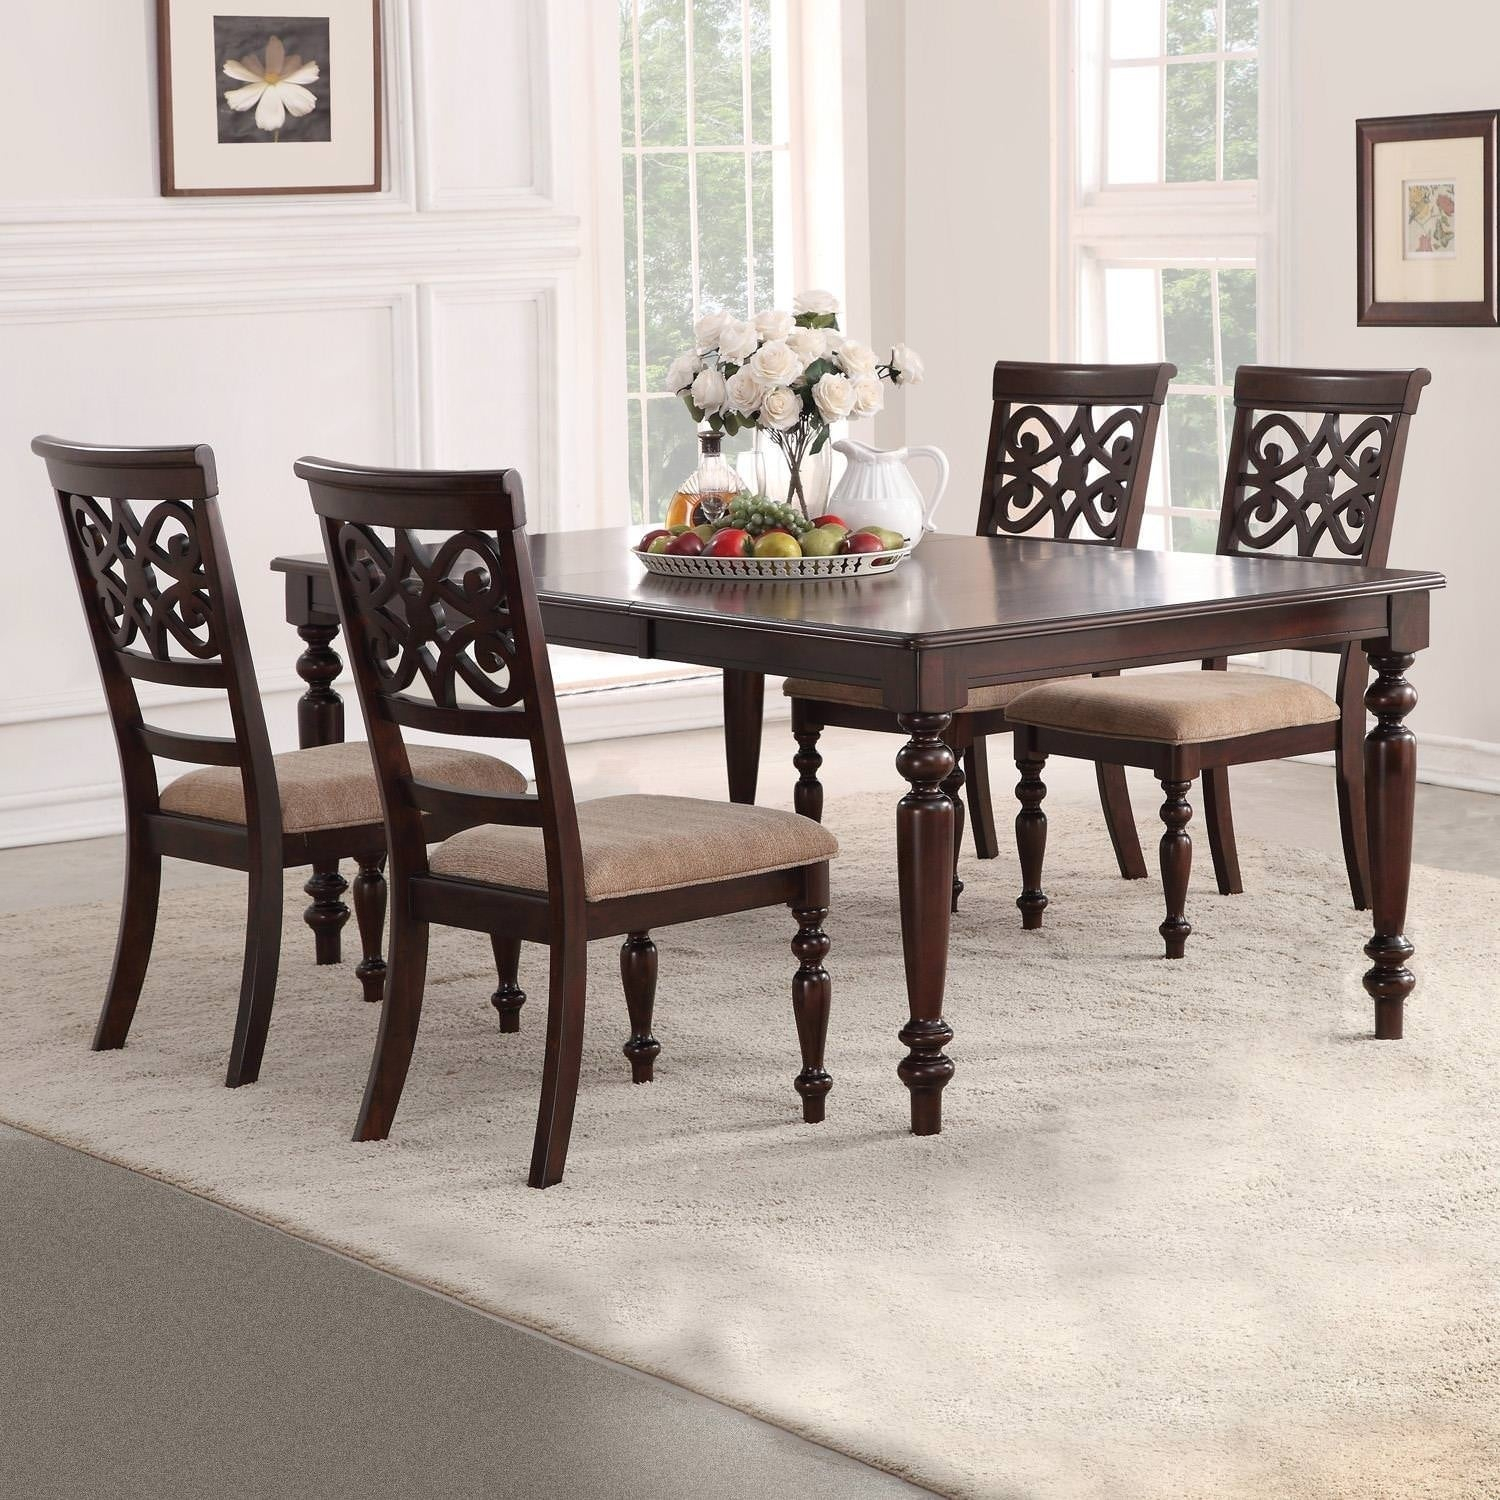 Home Source Laconia Walnut 5 Piece Dining Set Intended For 2018 Laconia 7 Pieces Solid Wood Dining Sets (Set Of 7) (View 12 of 20)